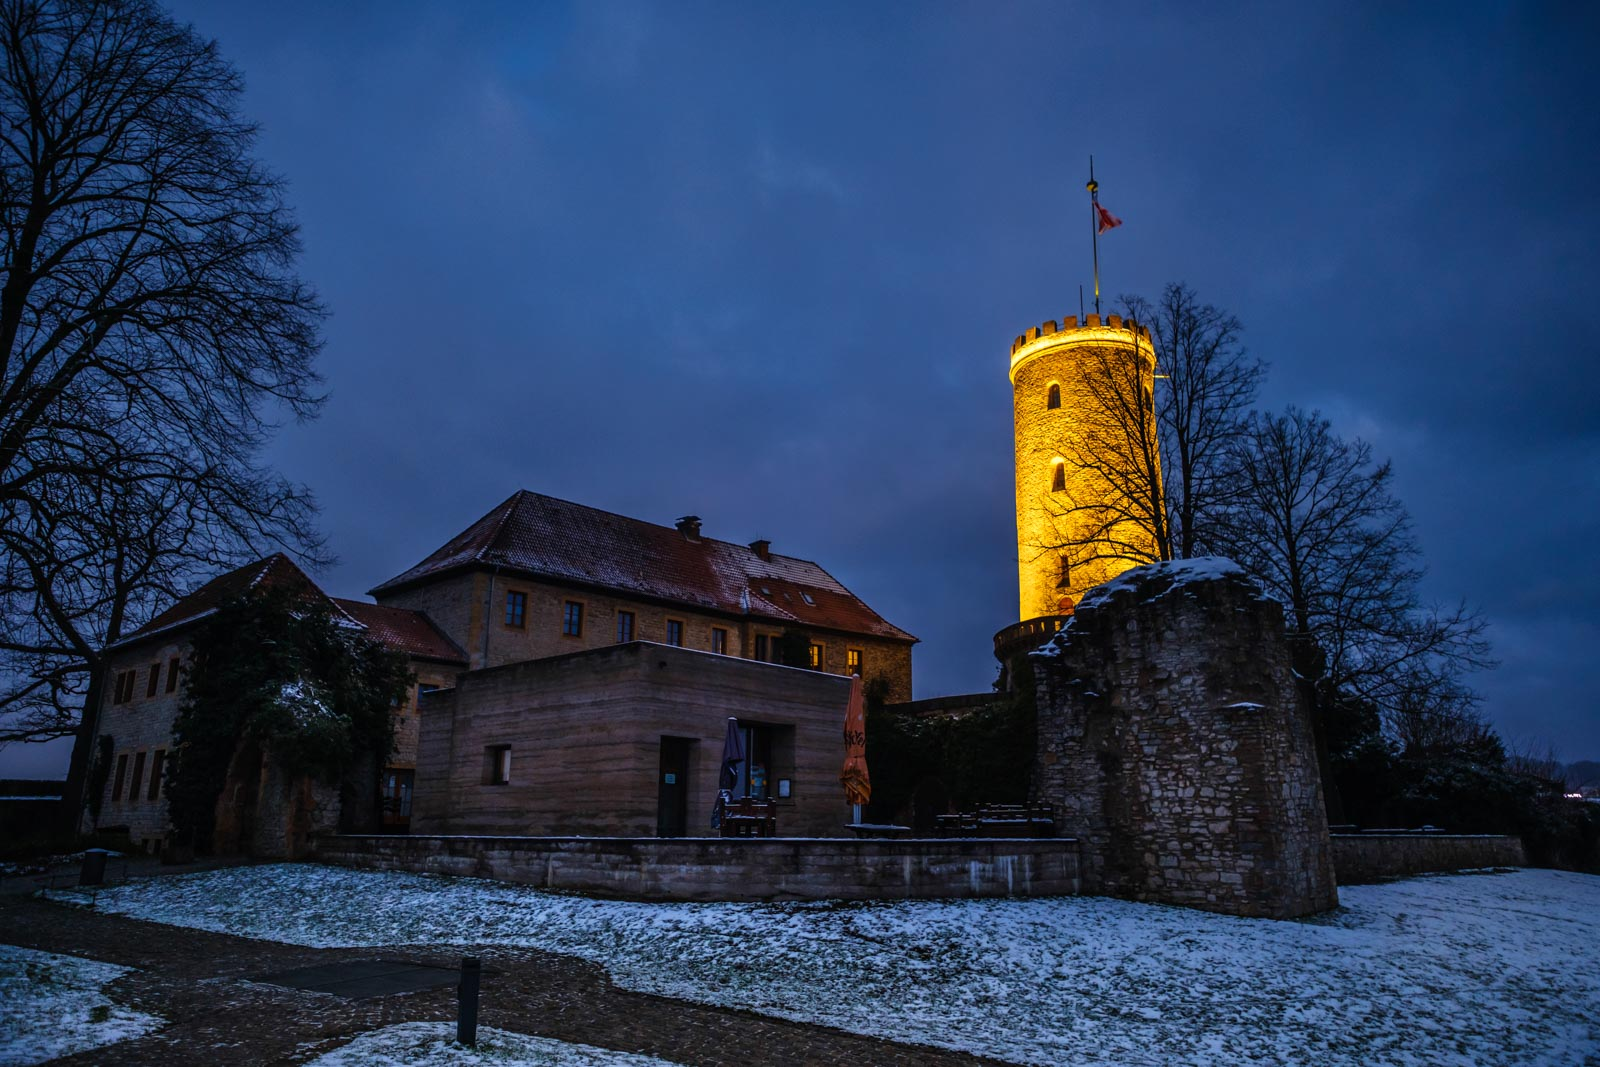 Early winter morning at the 'Sparrenburg' on January 9, 2021 (Bielefeld, Germany).